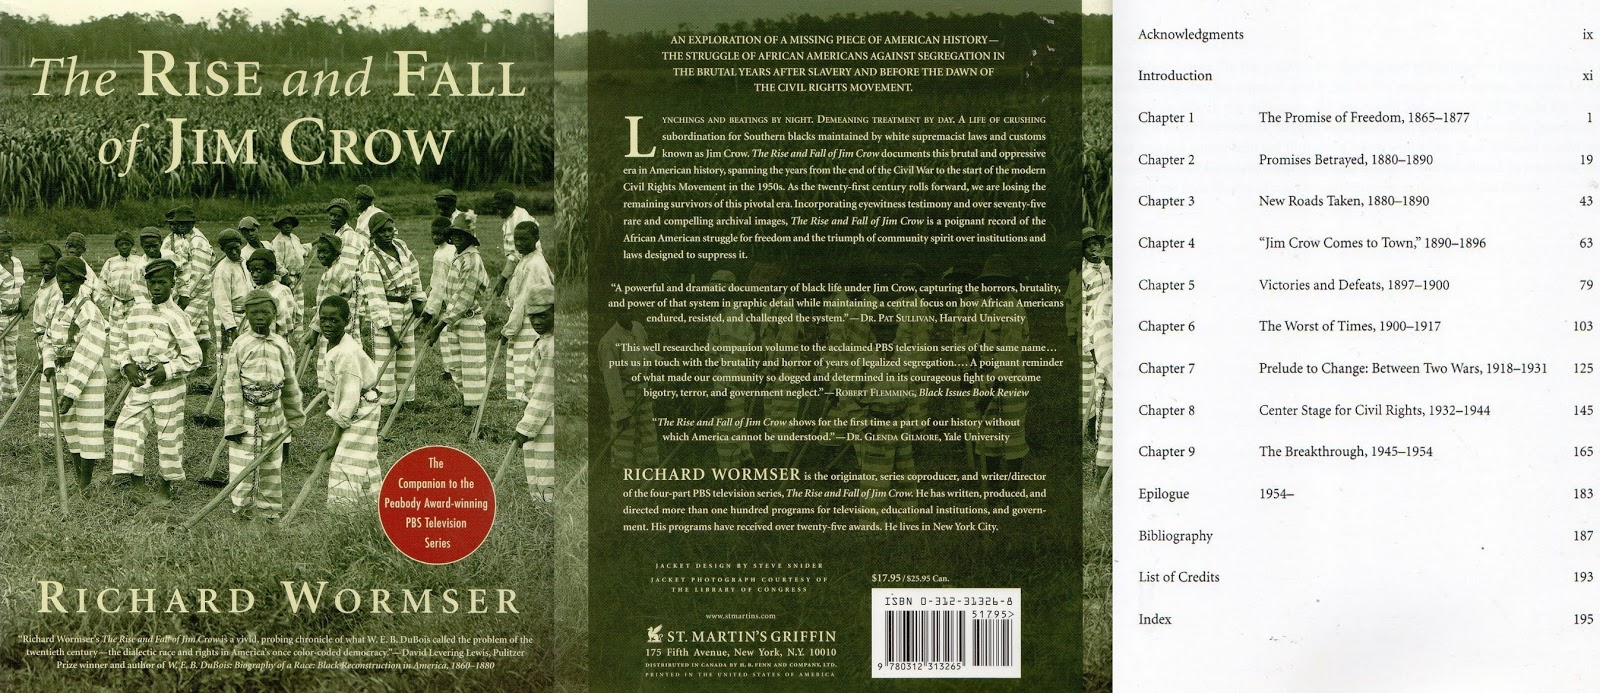 """the rise and fall of jim crow """"richard wormser's the rise and fall of jim crow is a vivid, probing chronicle of what web du bois called the problem of the twentieth century--the dialectic of race and rights in america's once color-coded democracy."""